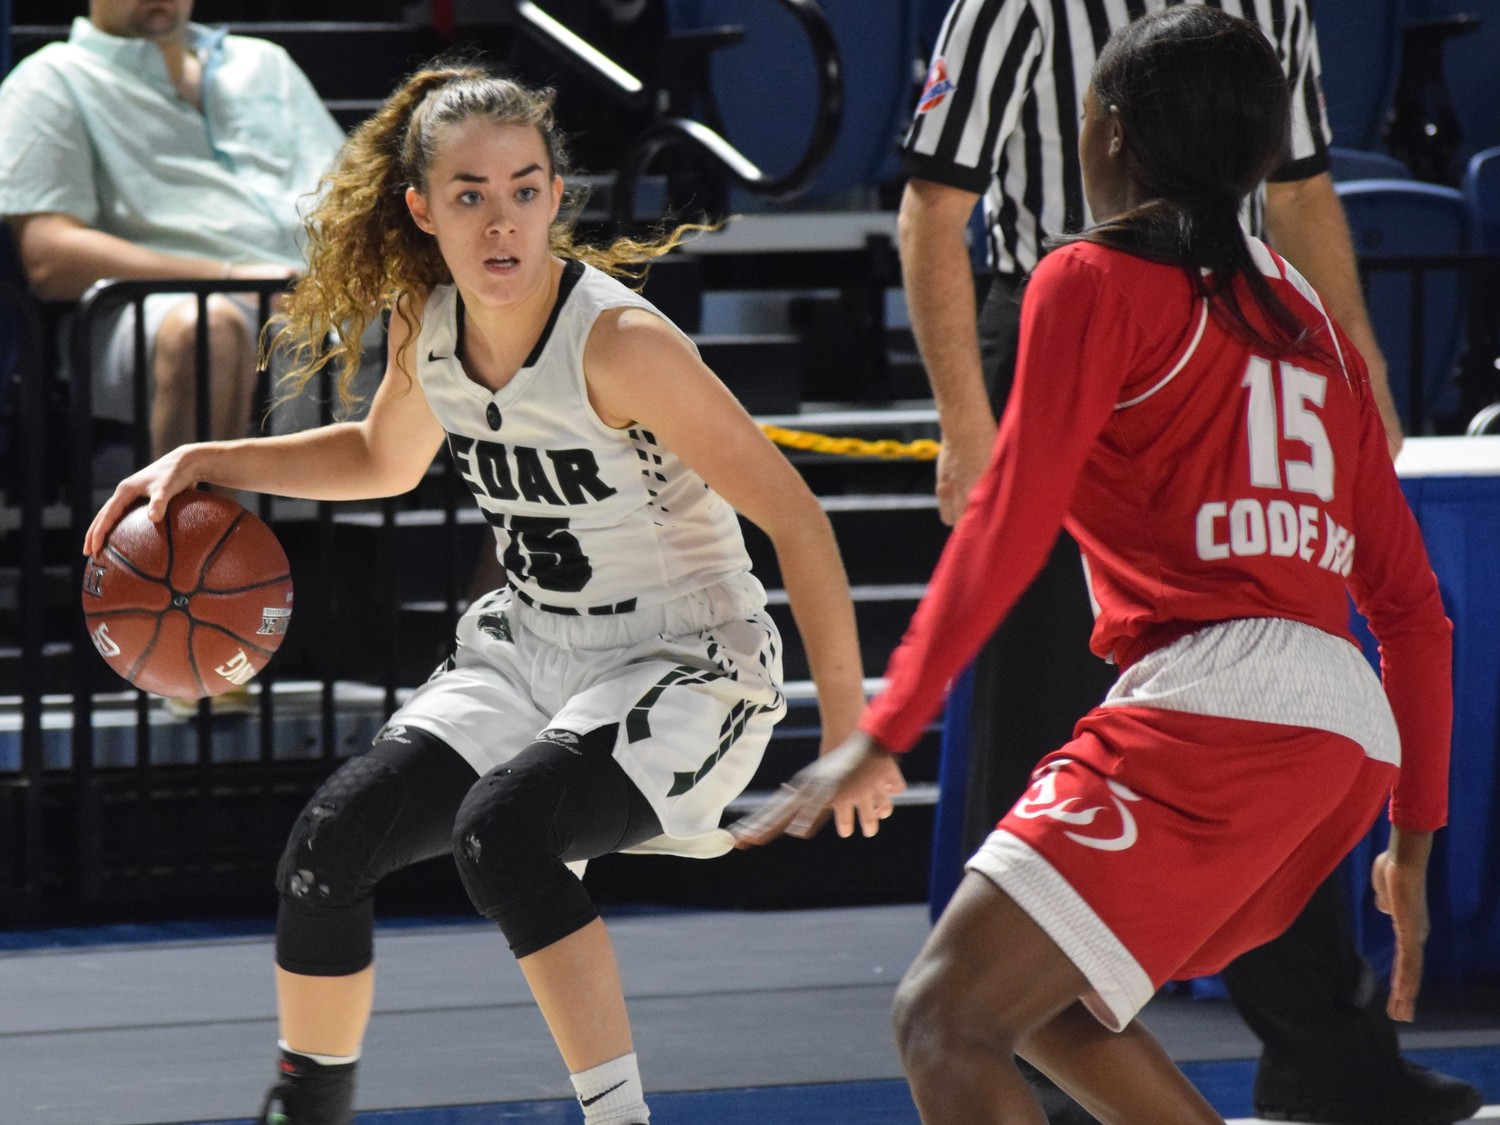 Kilee West and Cedar Park lost to Crosby 53-47 at the Delmar Fieldhouse in the regional semifinals.